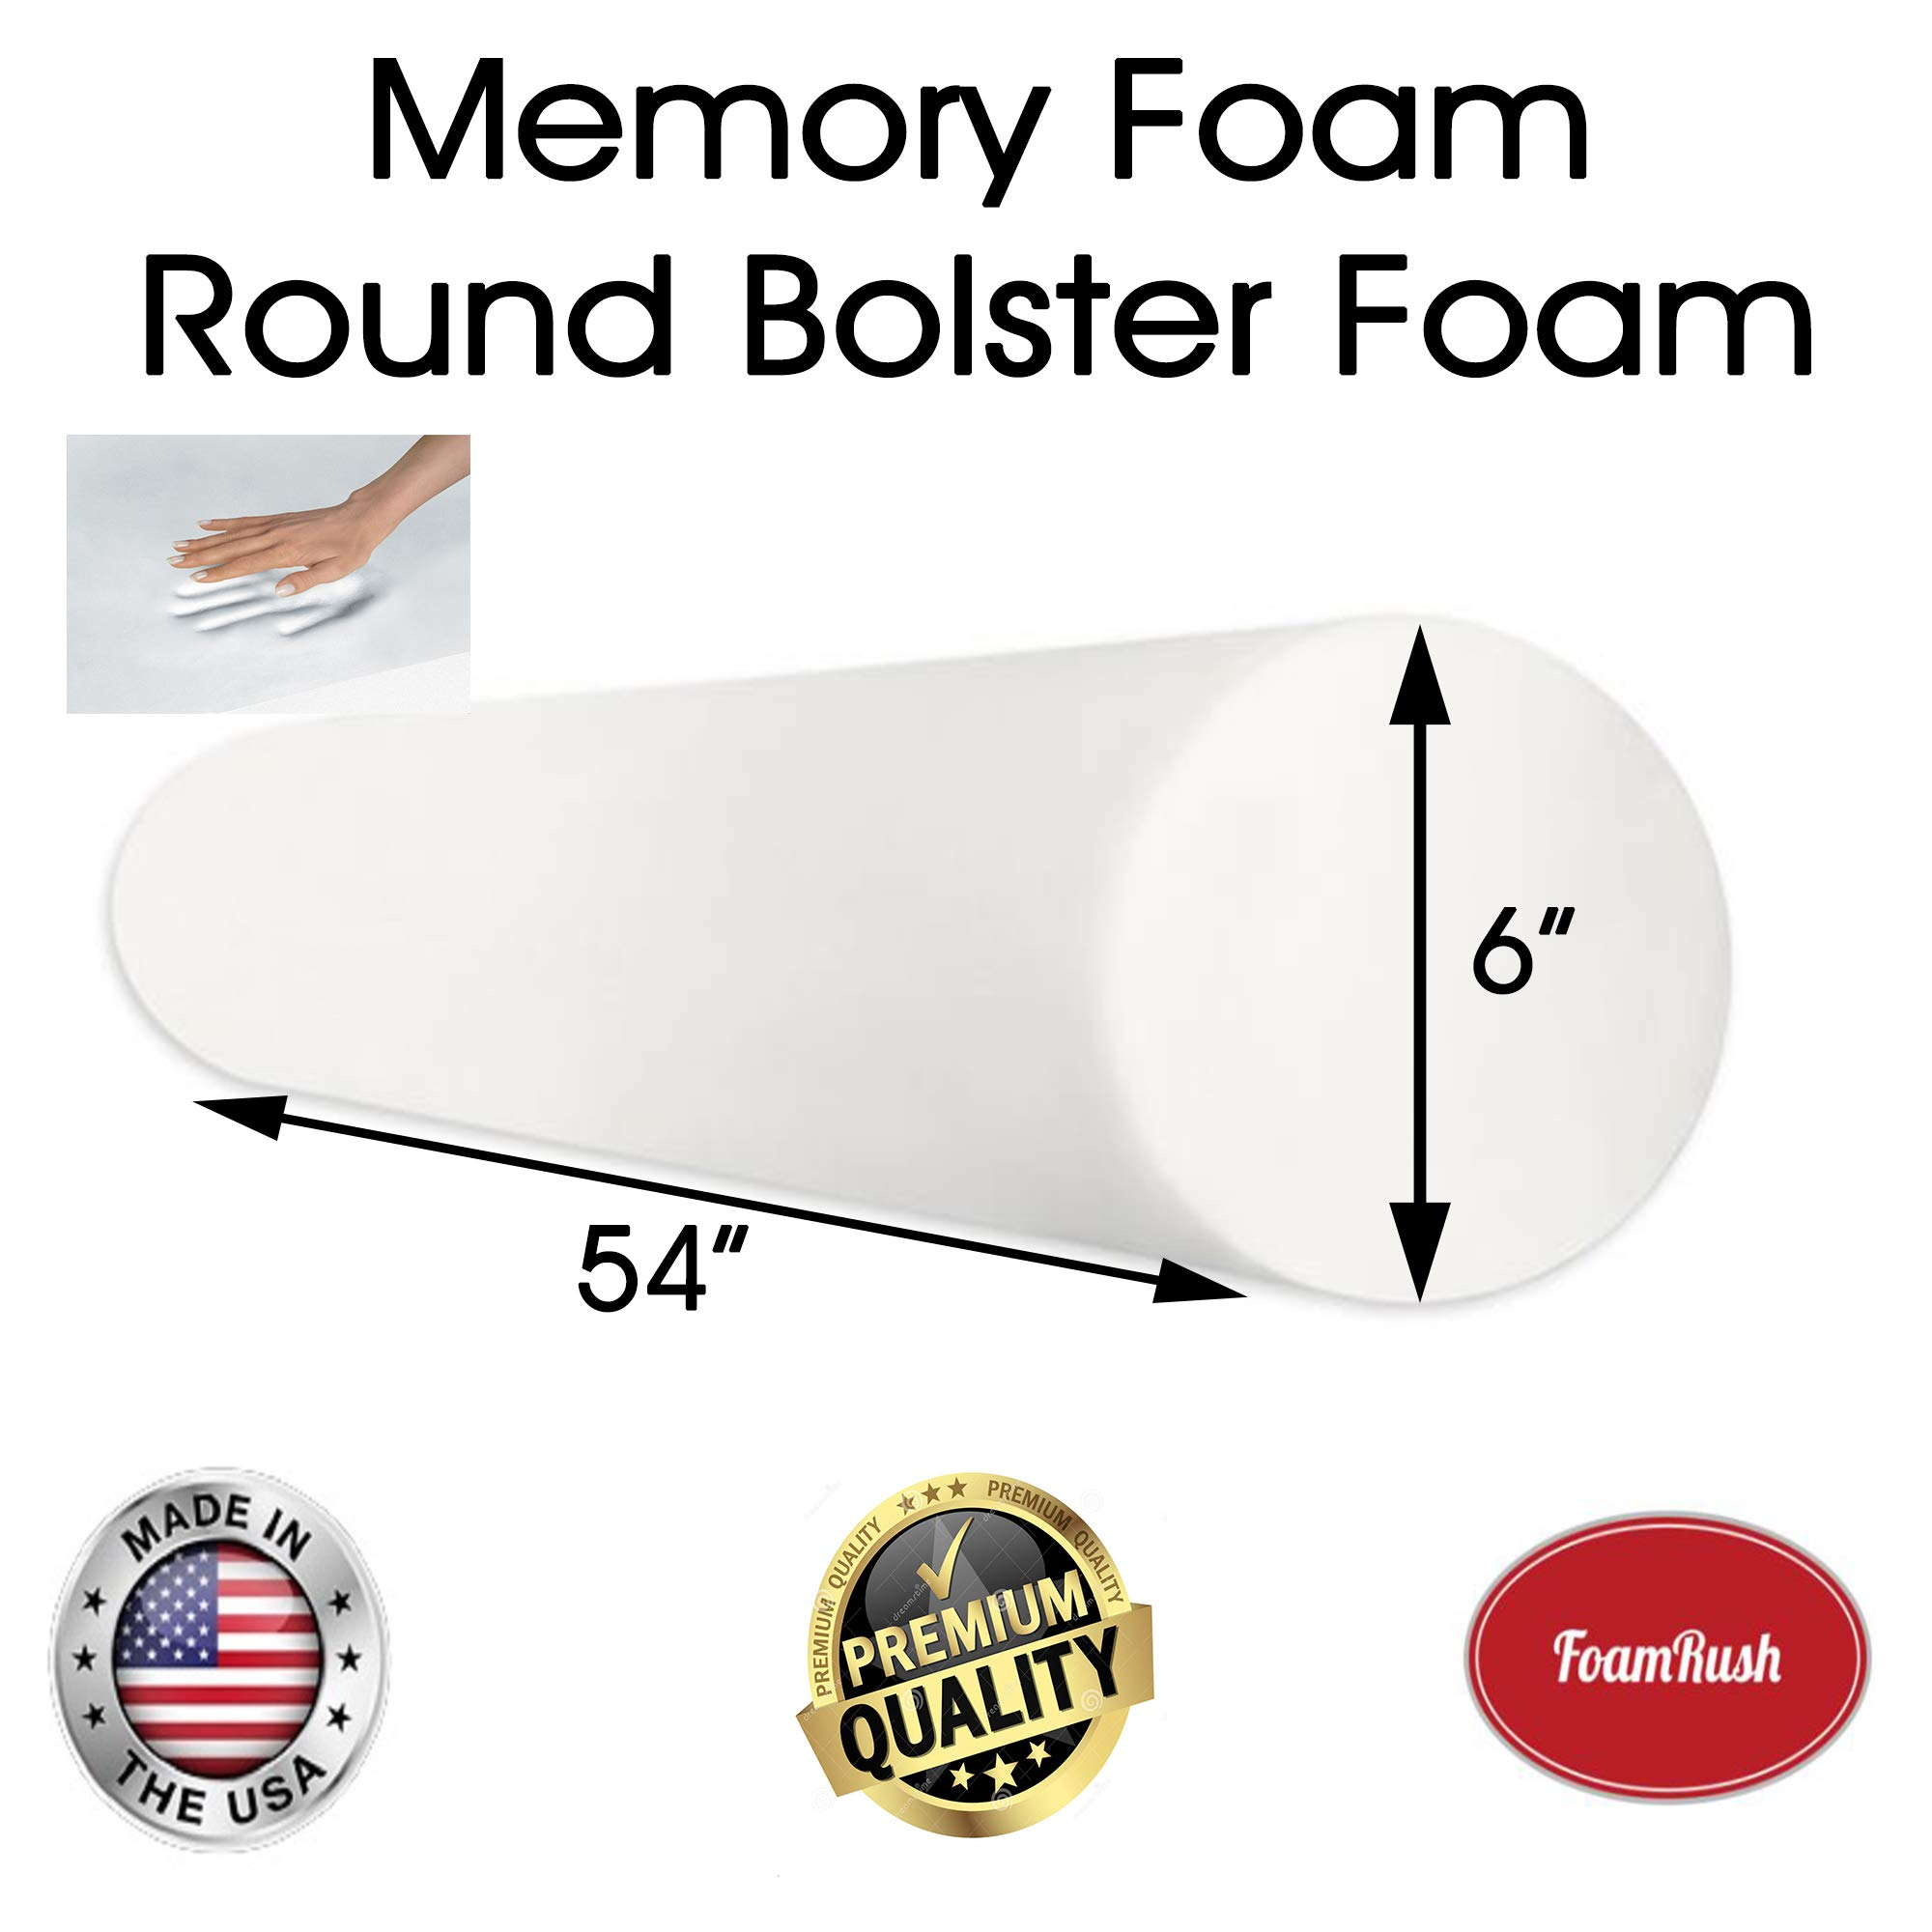 FoamRush 6'' Diameter x 54'' Long Premium Quality Round Bolster Memory Foam Roll Insert Replacement (Ideal for Home Accent Décor Positioning and General Fitness) Made in USA